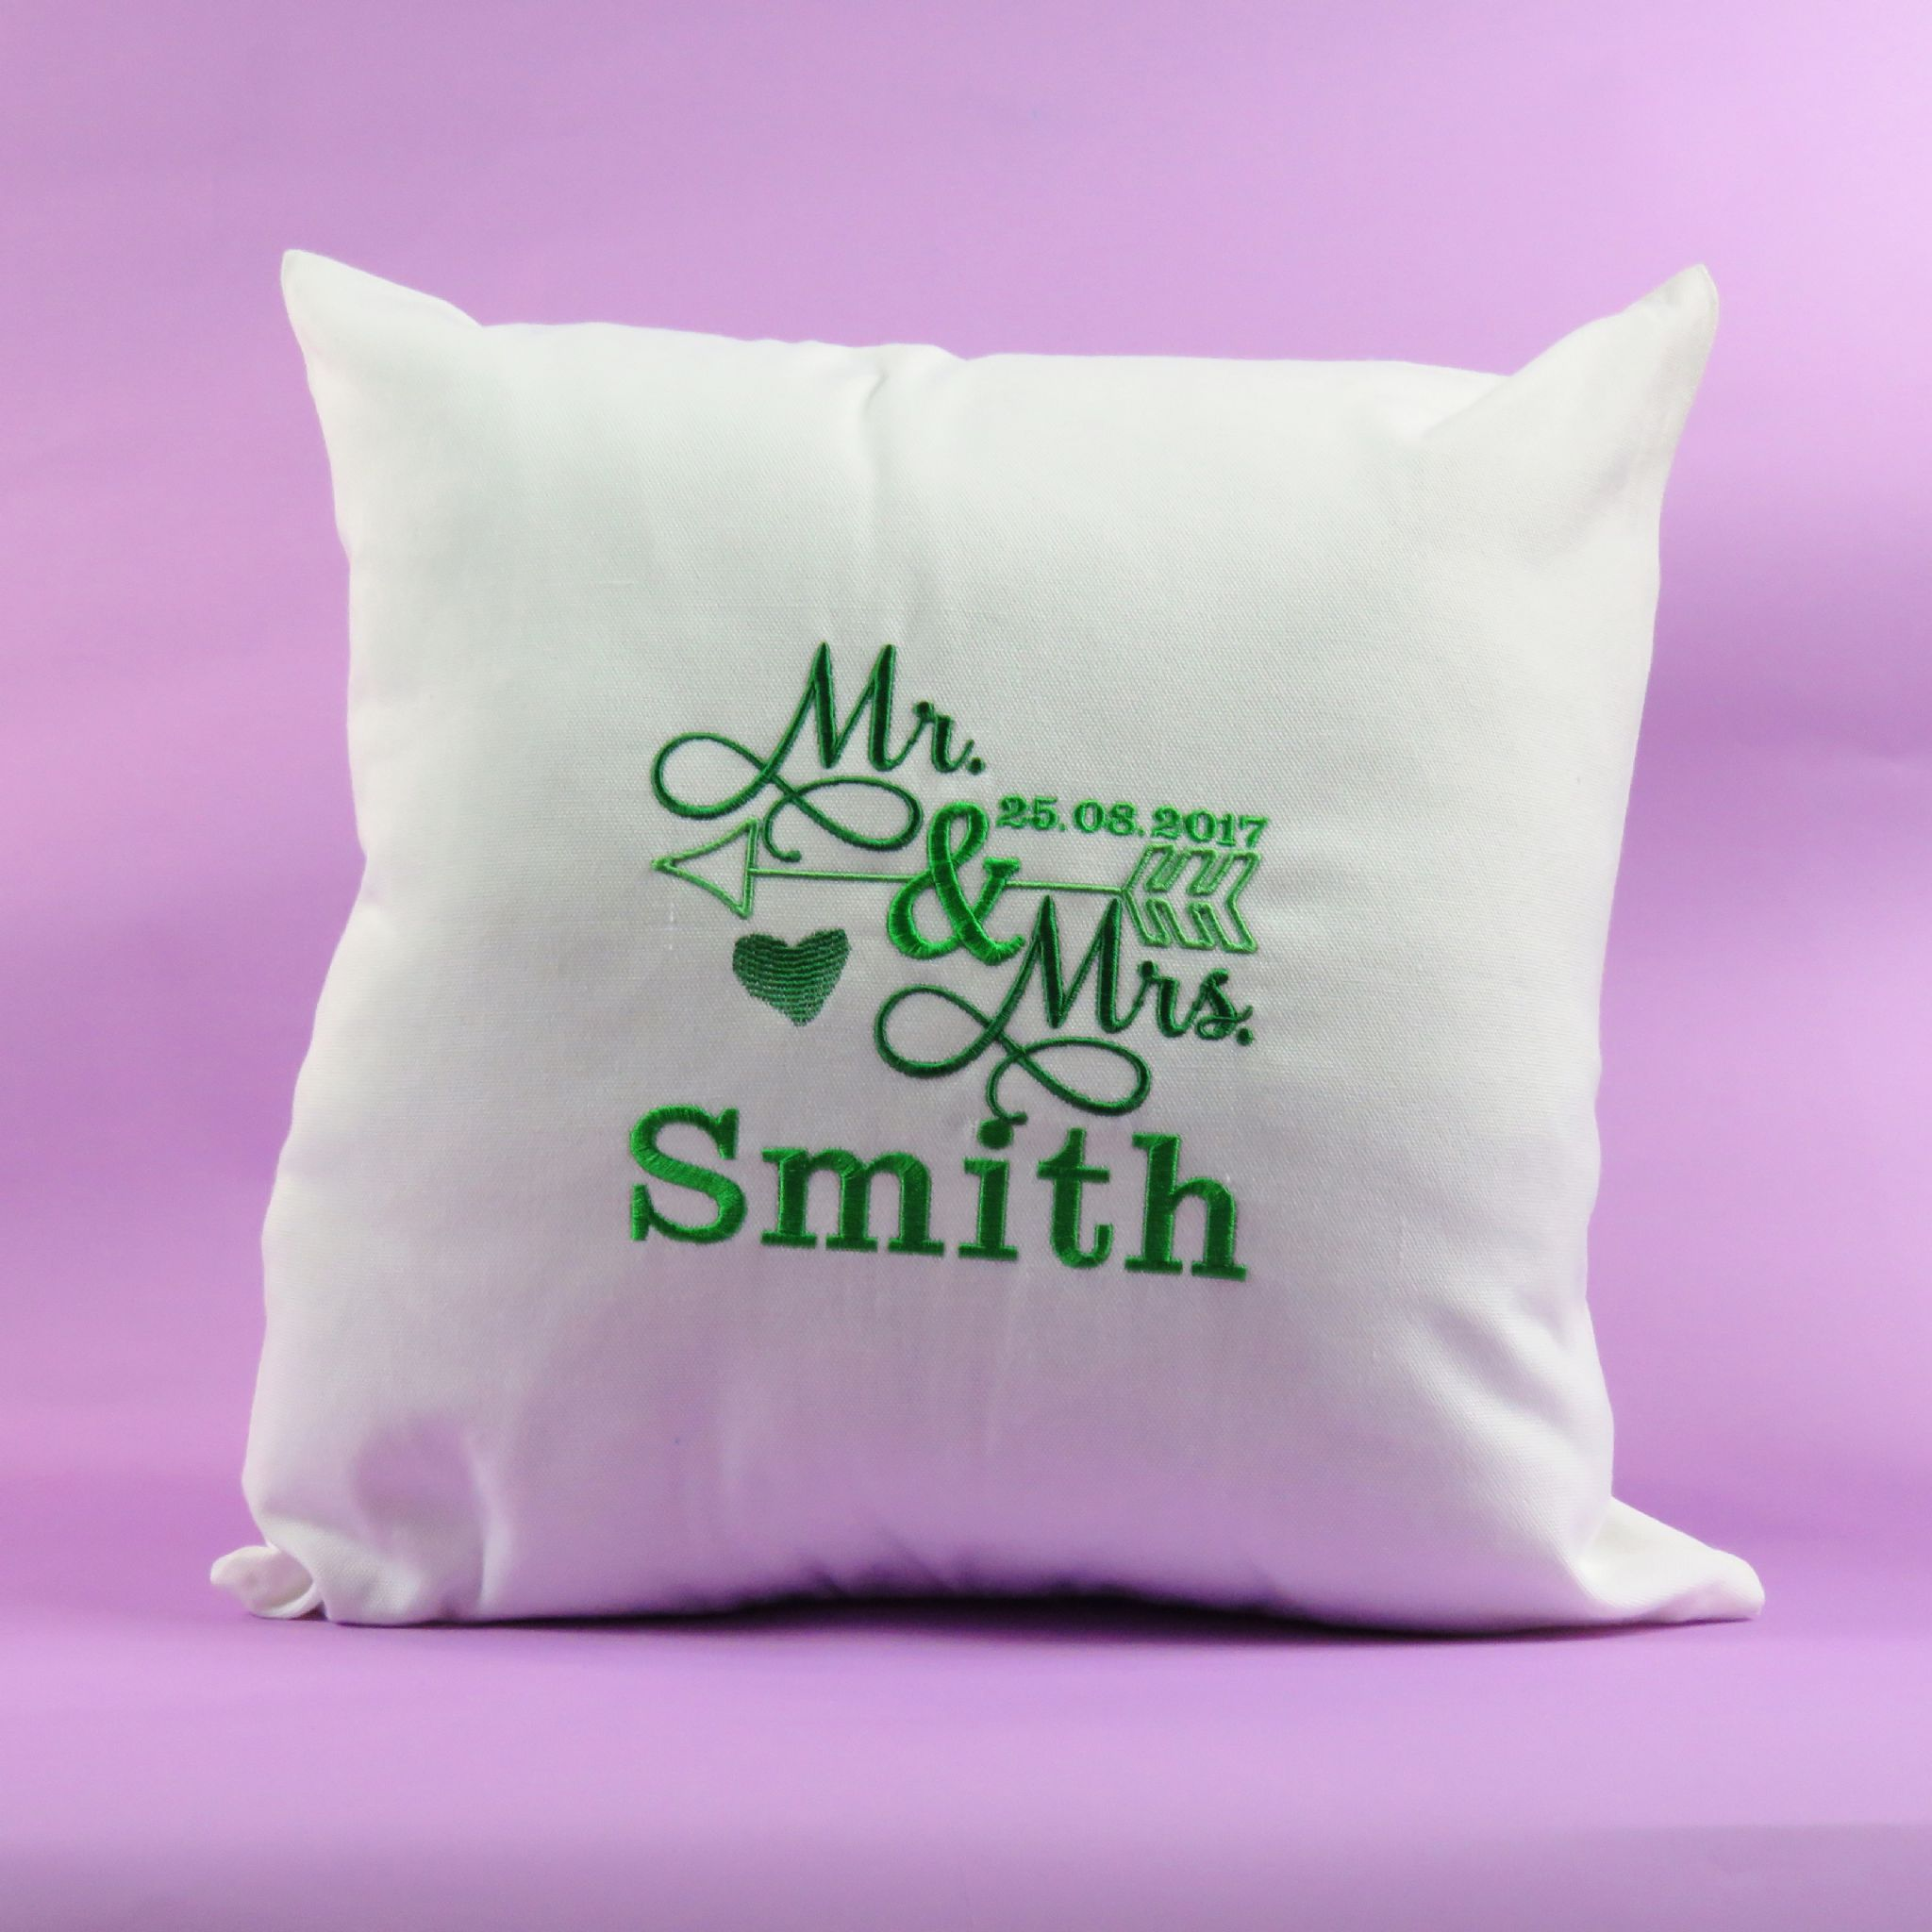 Personalised embroidered arrow personalisable cushion